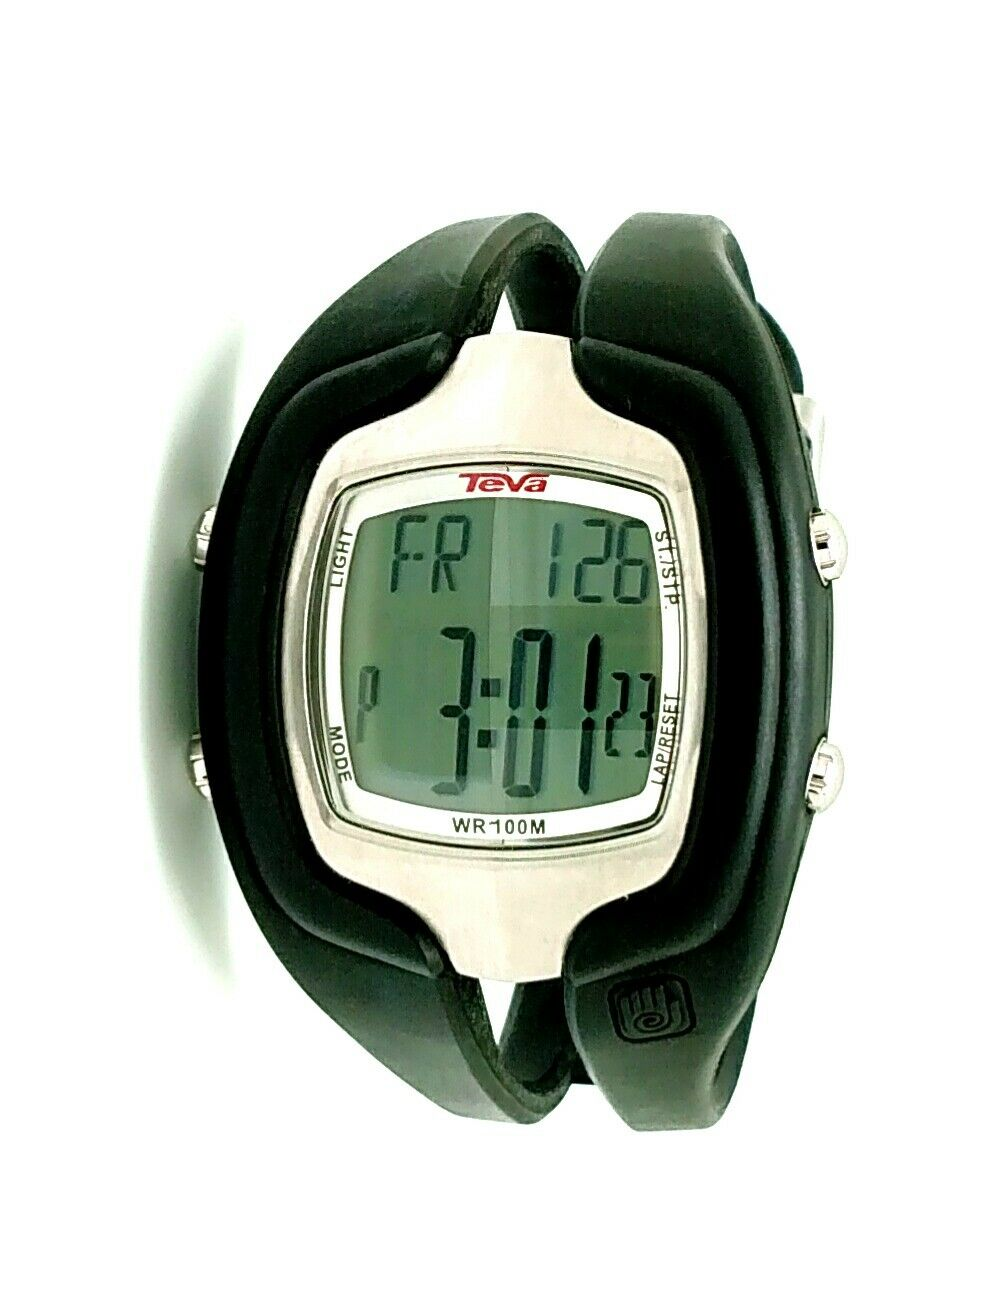 Teva Digital Sport Watch Vintage 45mm Silver and Black Perfect condition